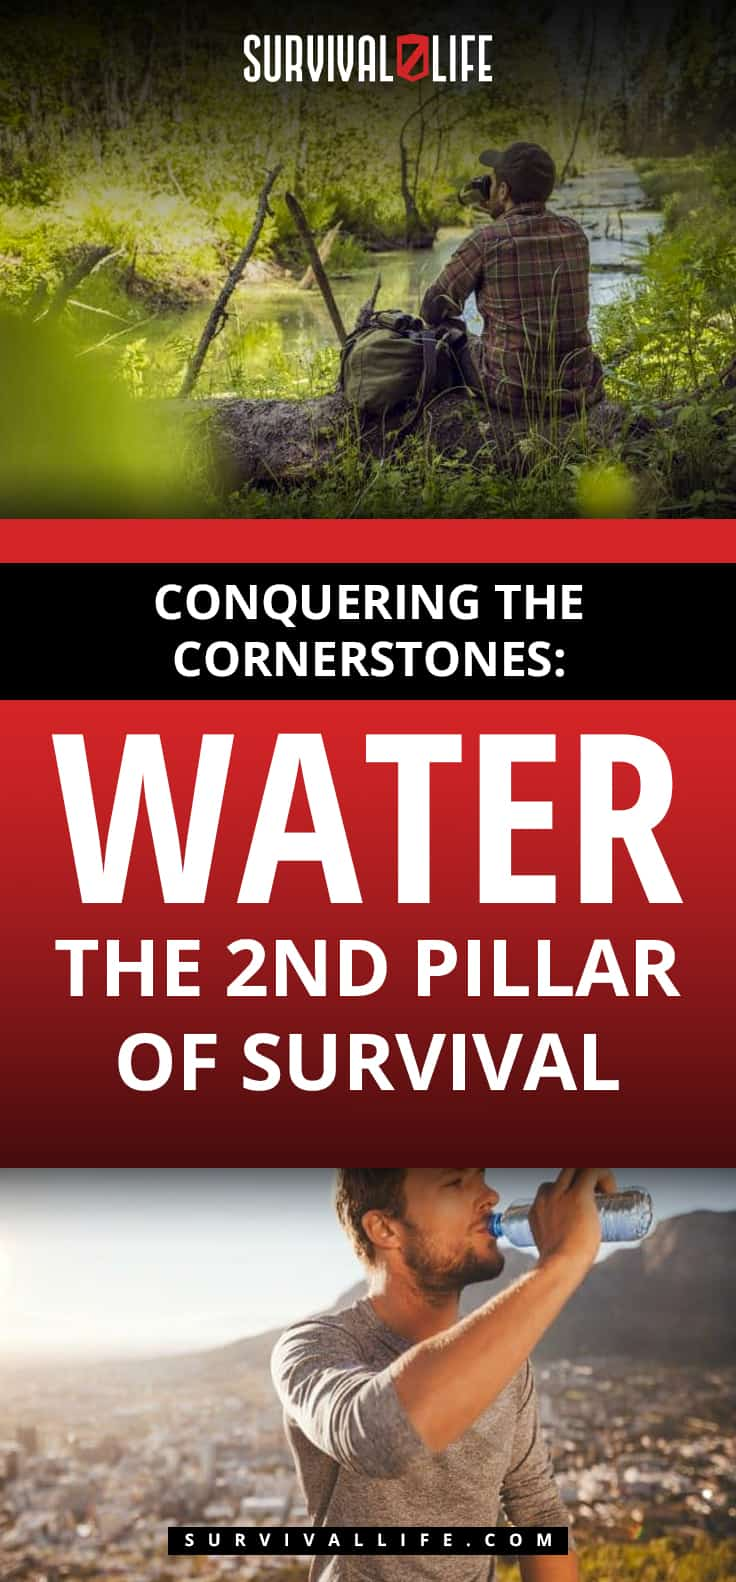 Placard | Water Survival | Conquering the Cornerstones: Water - the 2nd Pillar of Survival